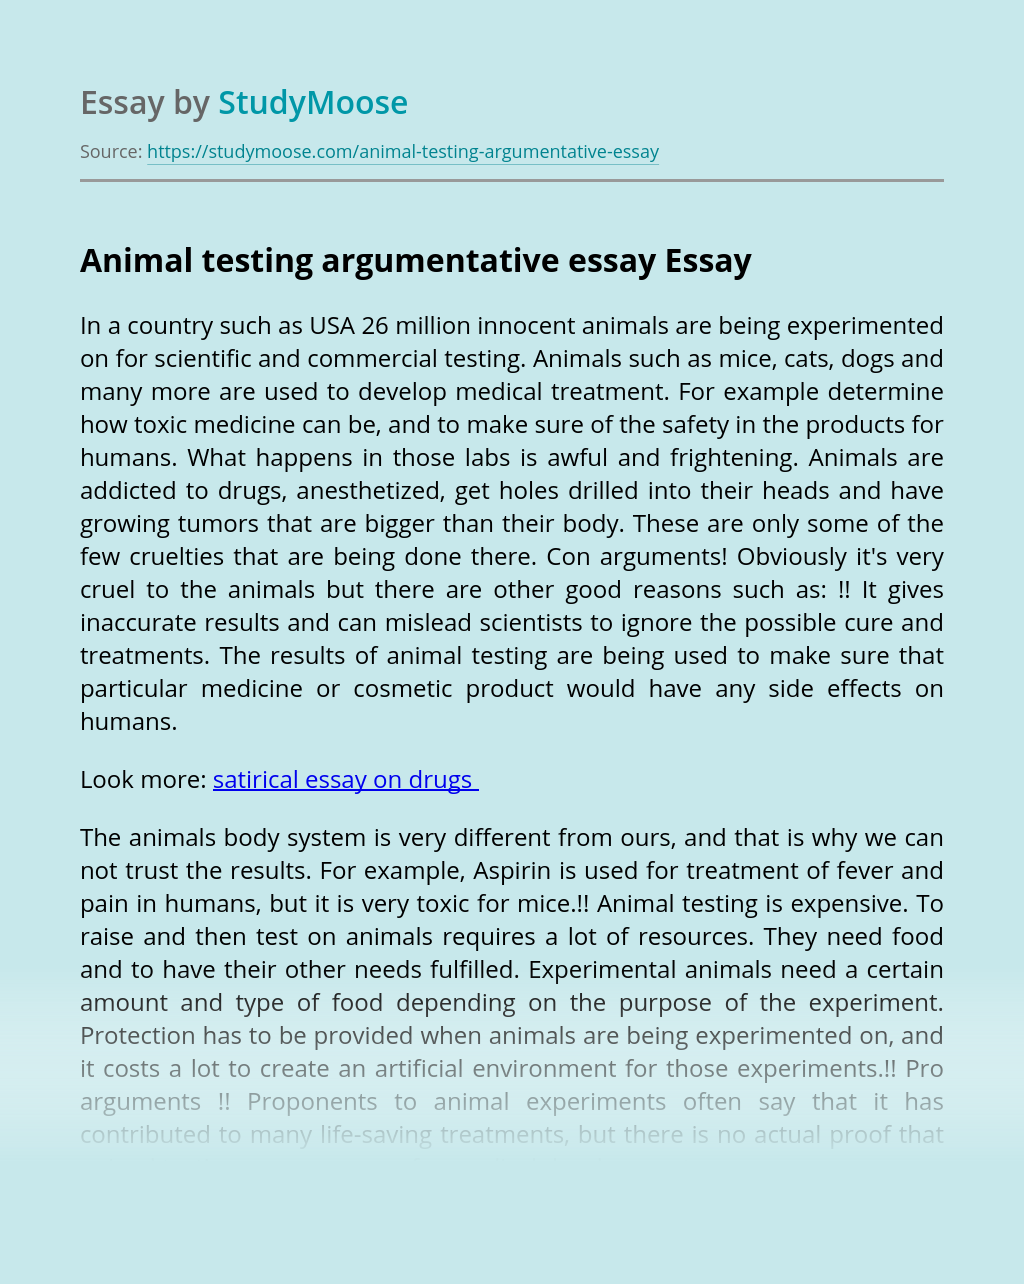 Example of argumentative essay on animal testing